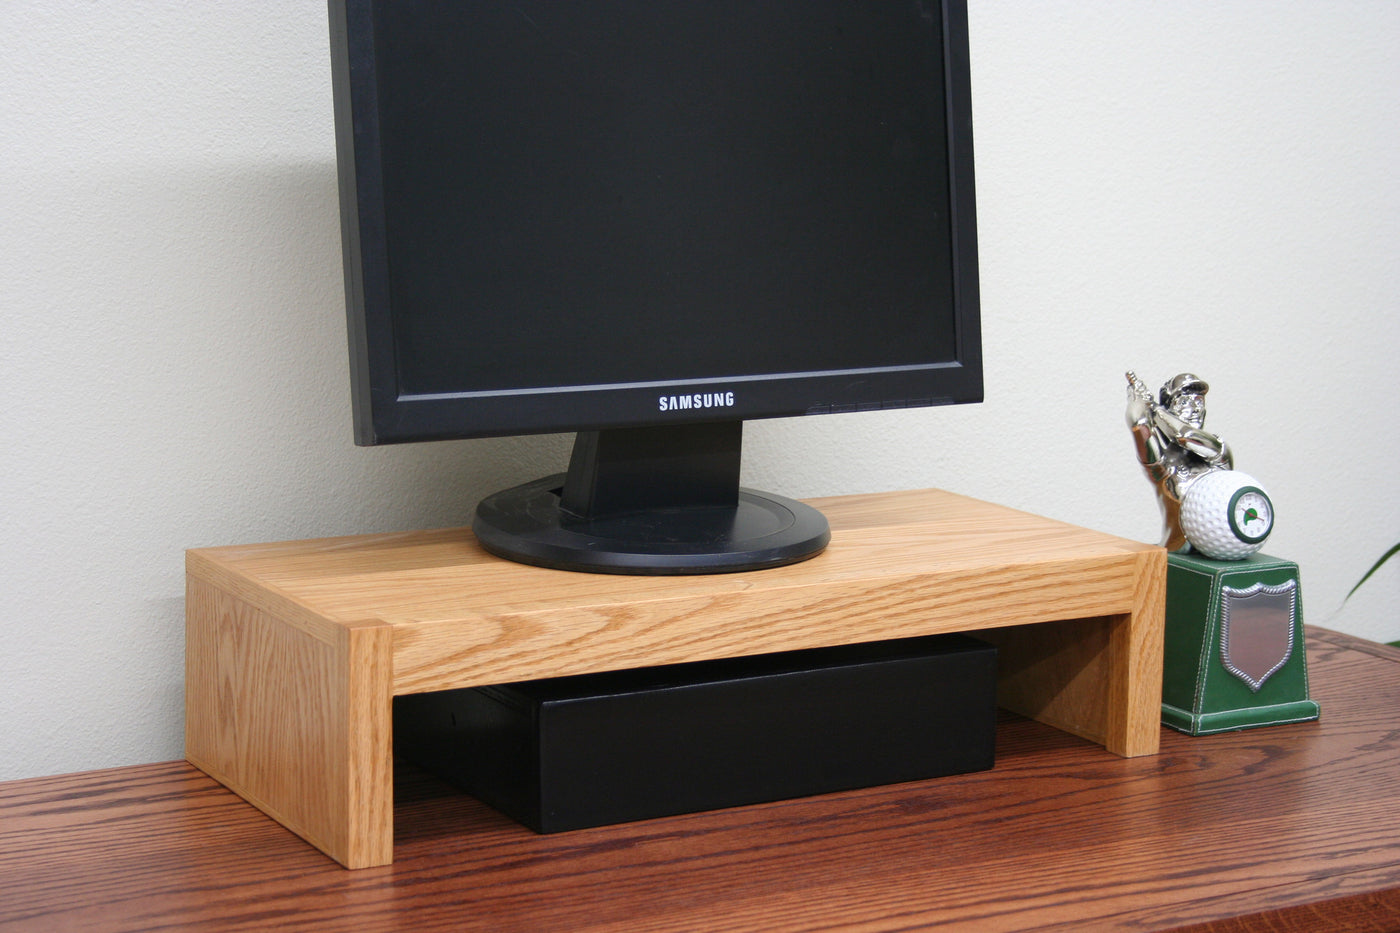 Modern Computer Led Lcd Tv Monitor Riser Stand Oak Wood By Jdi Home